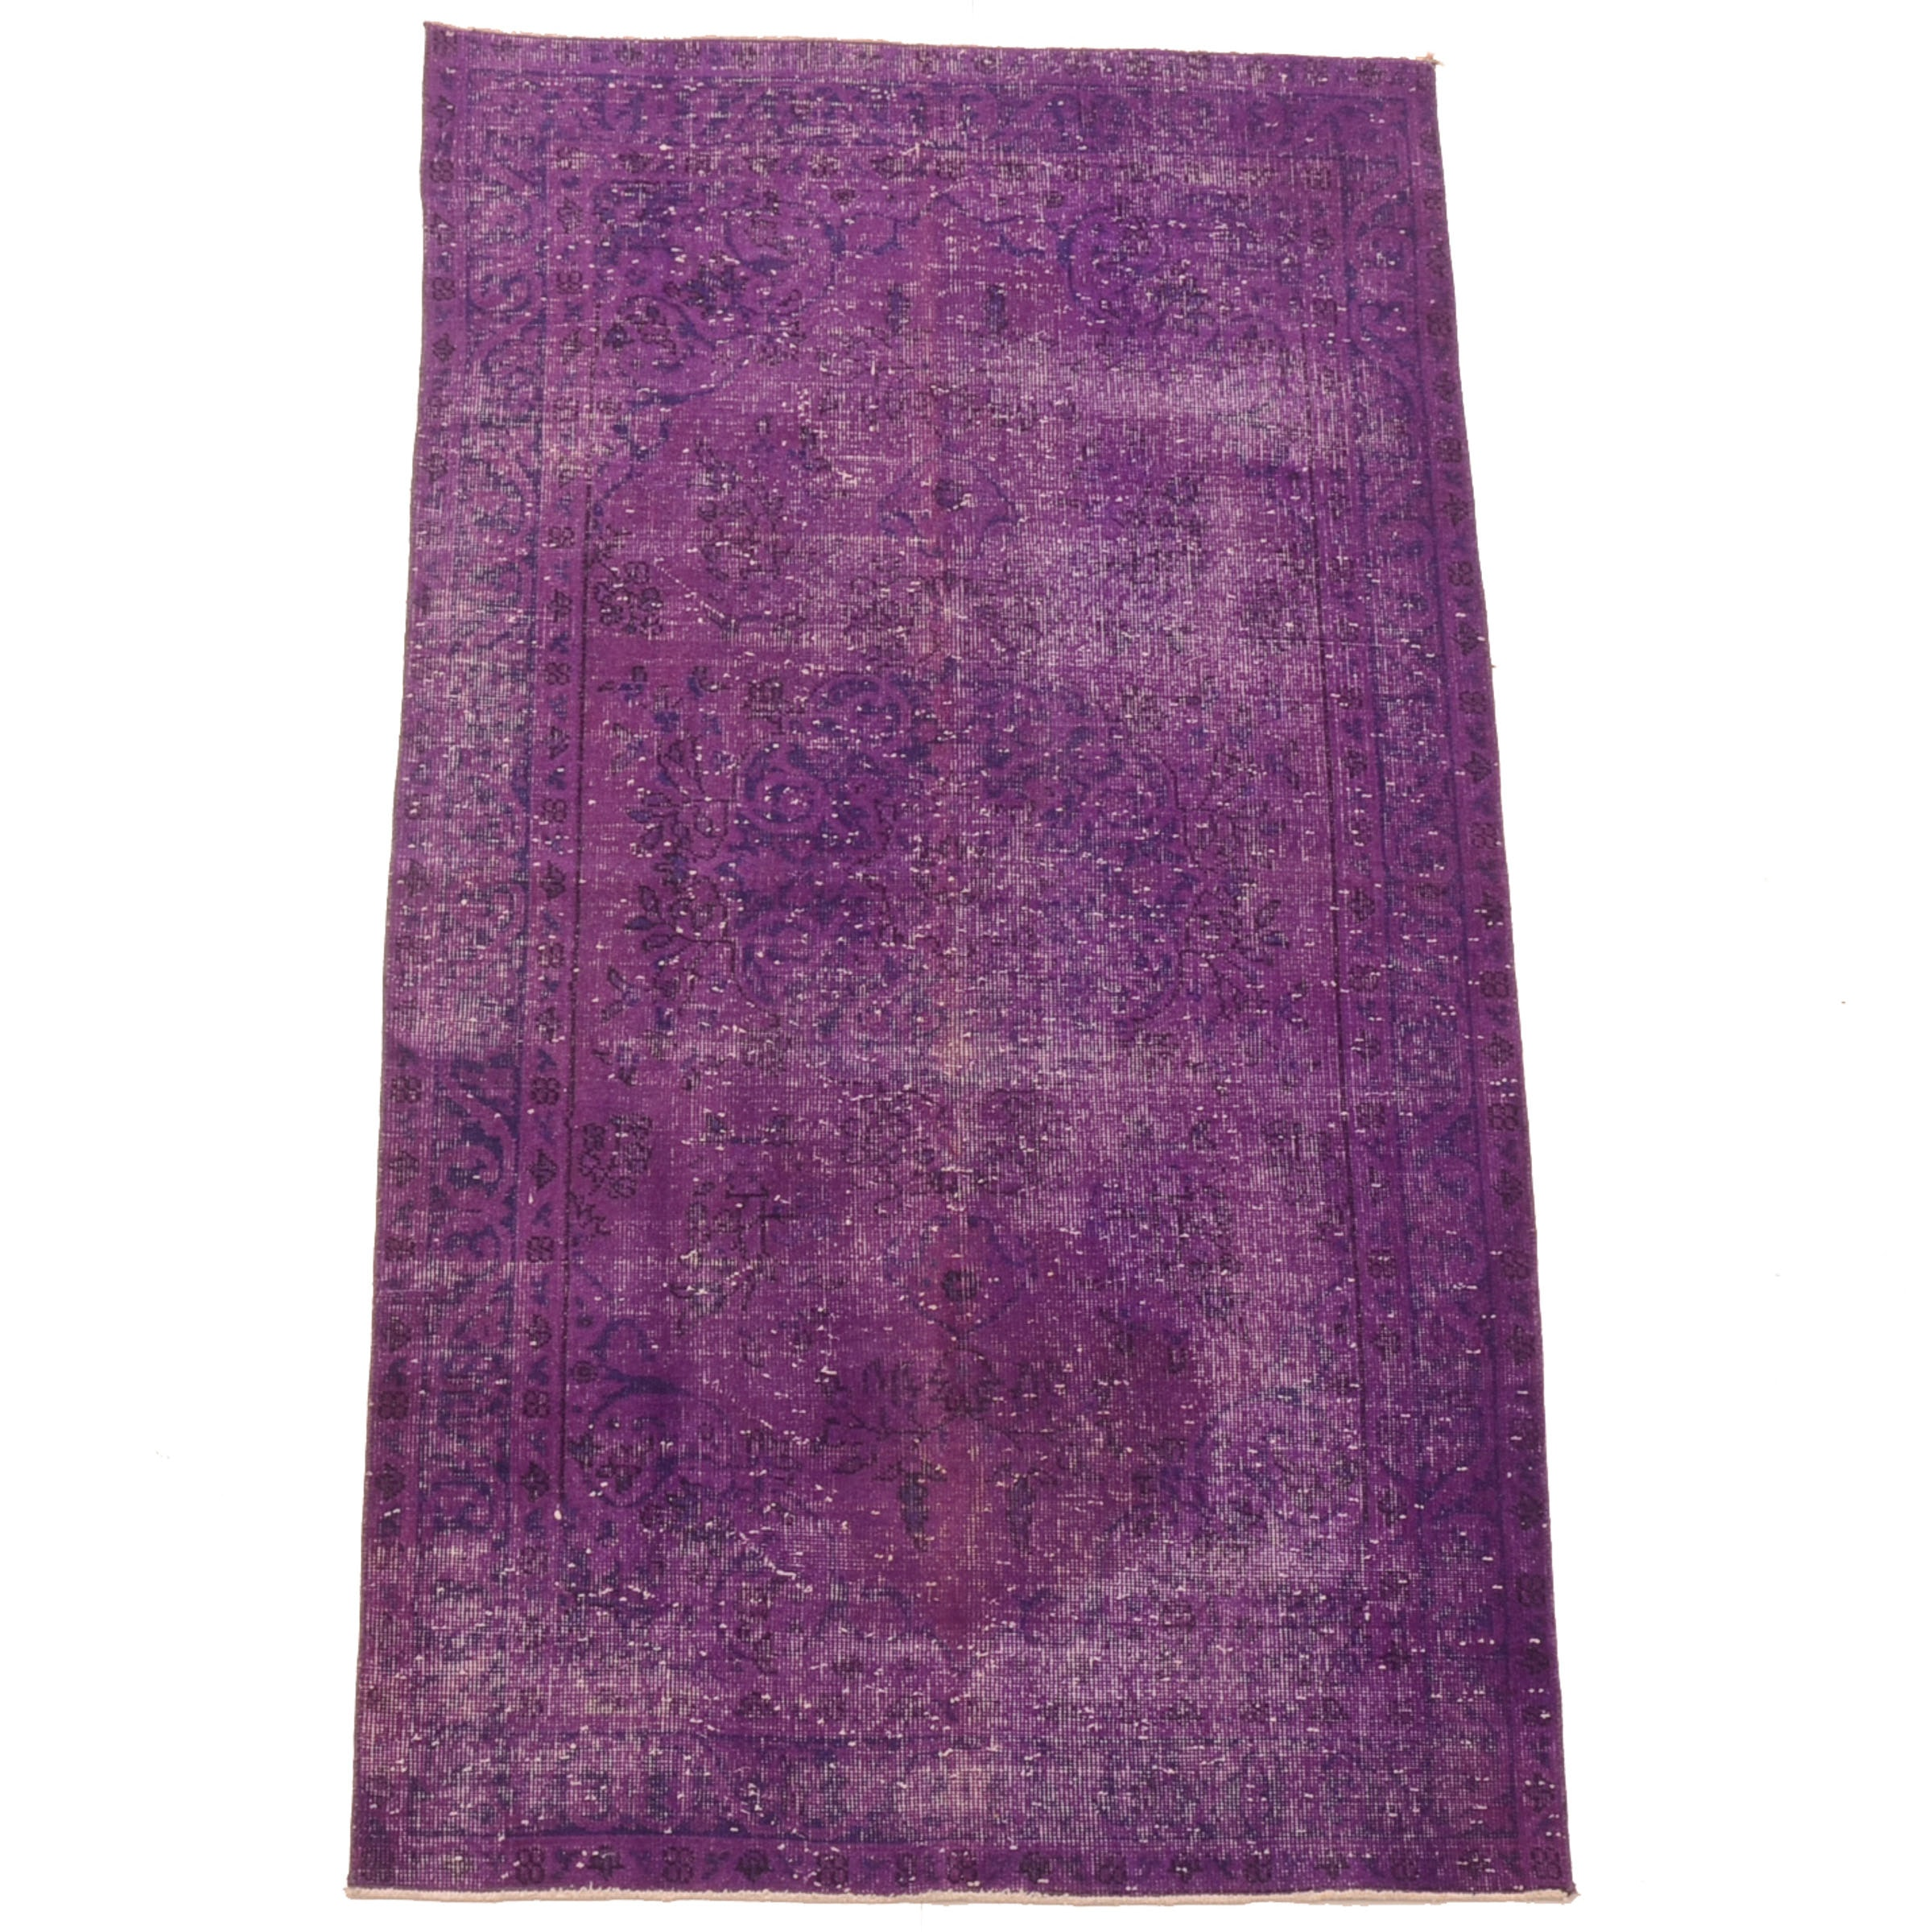 Hand-Knotted Overdyed Turkish Wool Area Rug